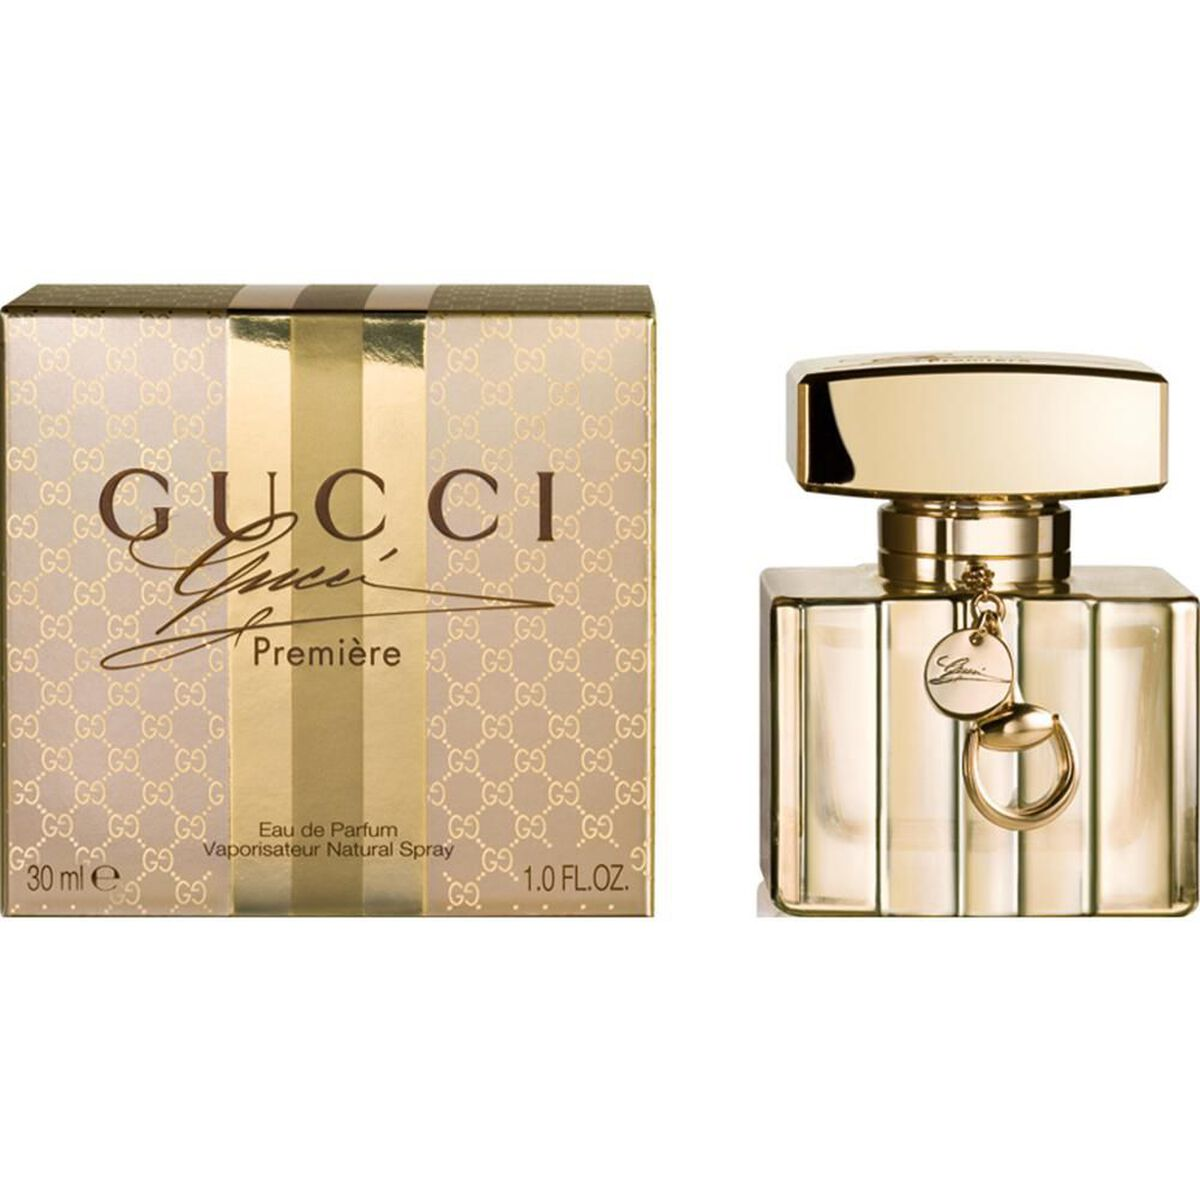 gucci premi re eau de parfum karstadt online shop. Black Bedroom Furniture Sets. Home Design Ideas